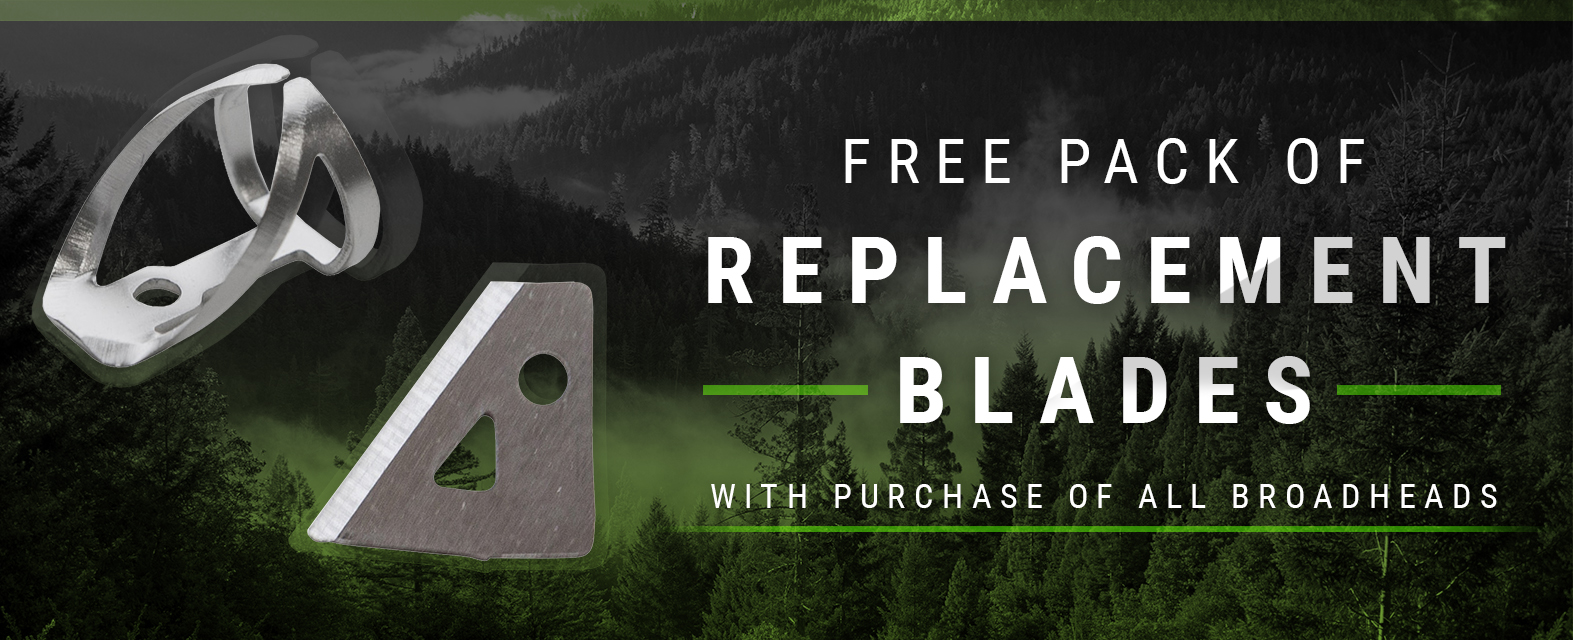 Free Pack of Replacement Blades with all Broadheads